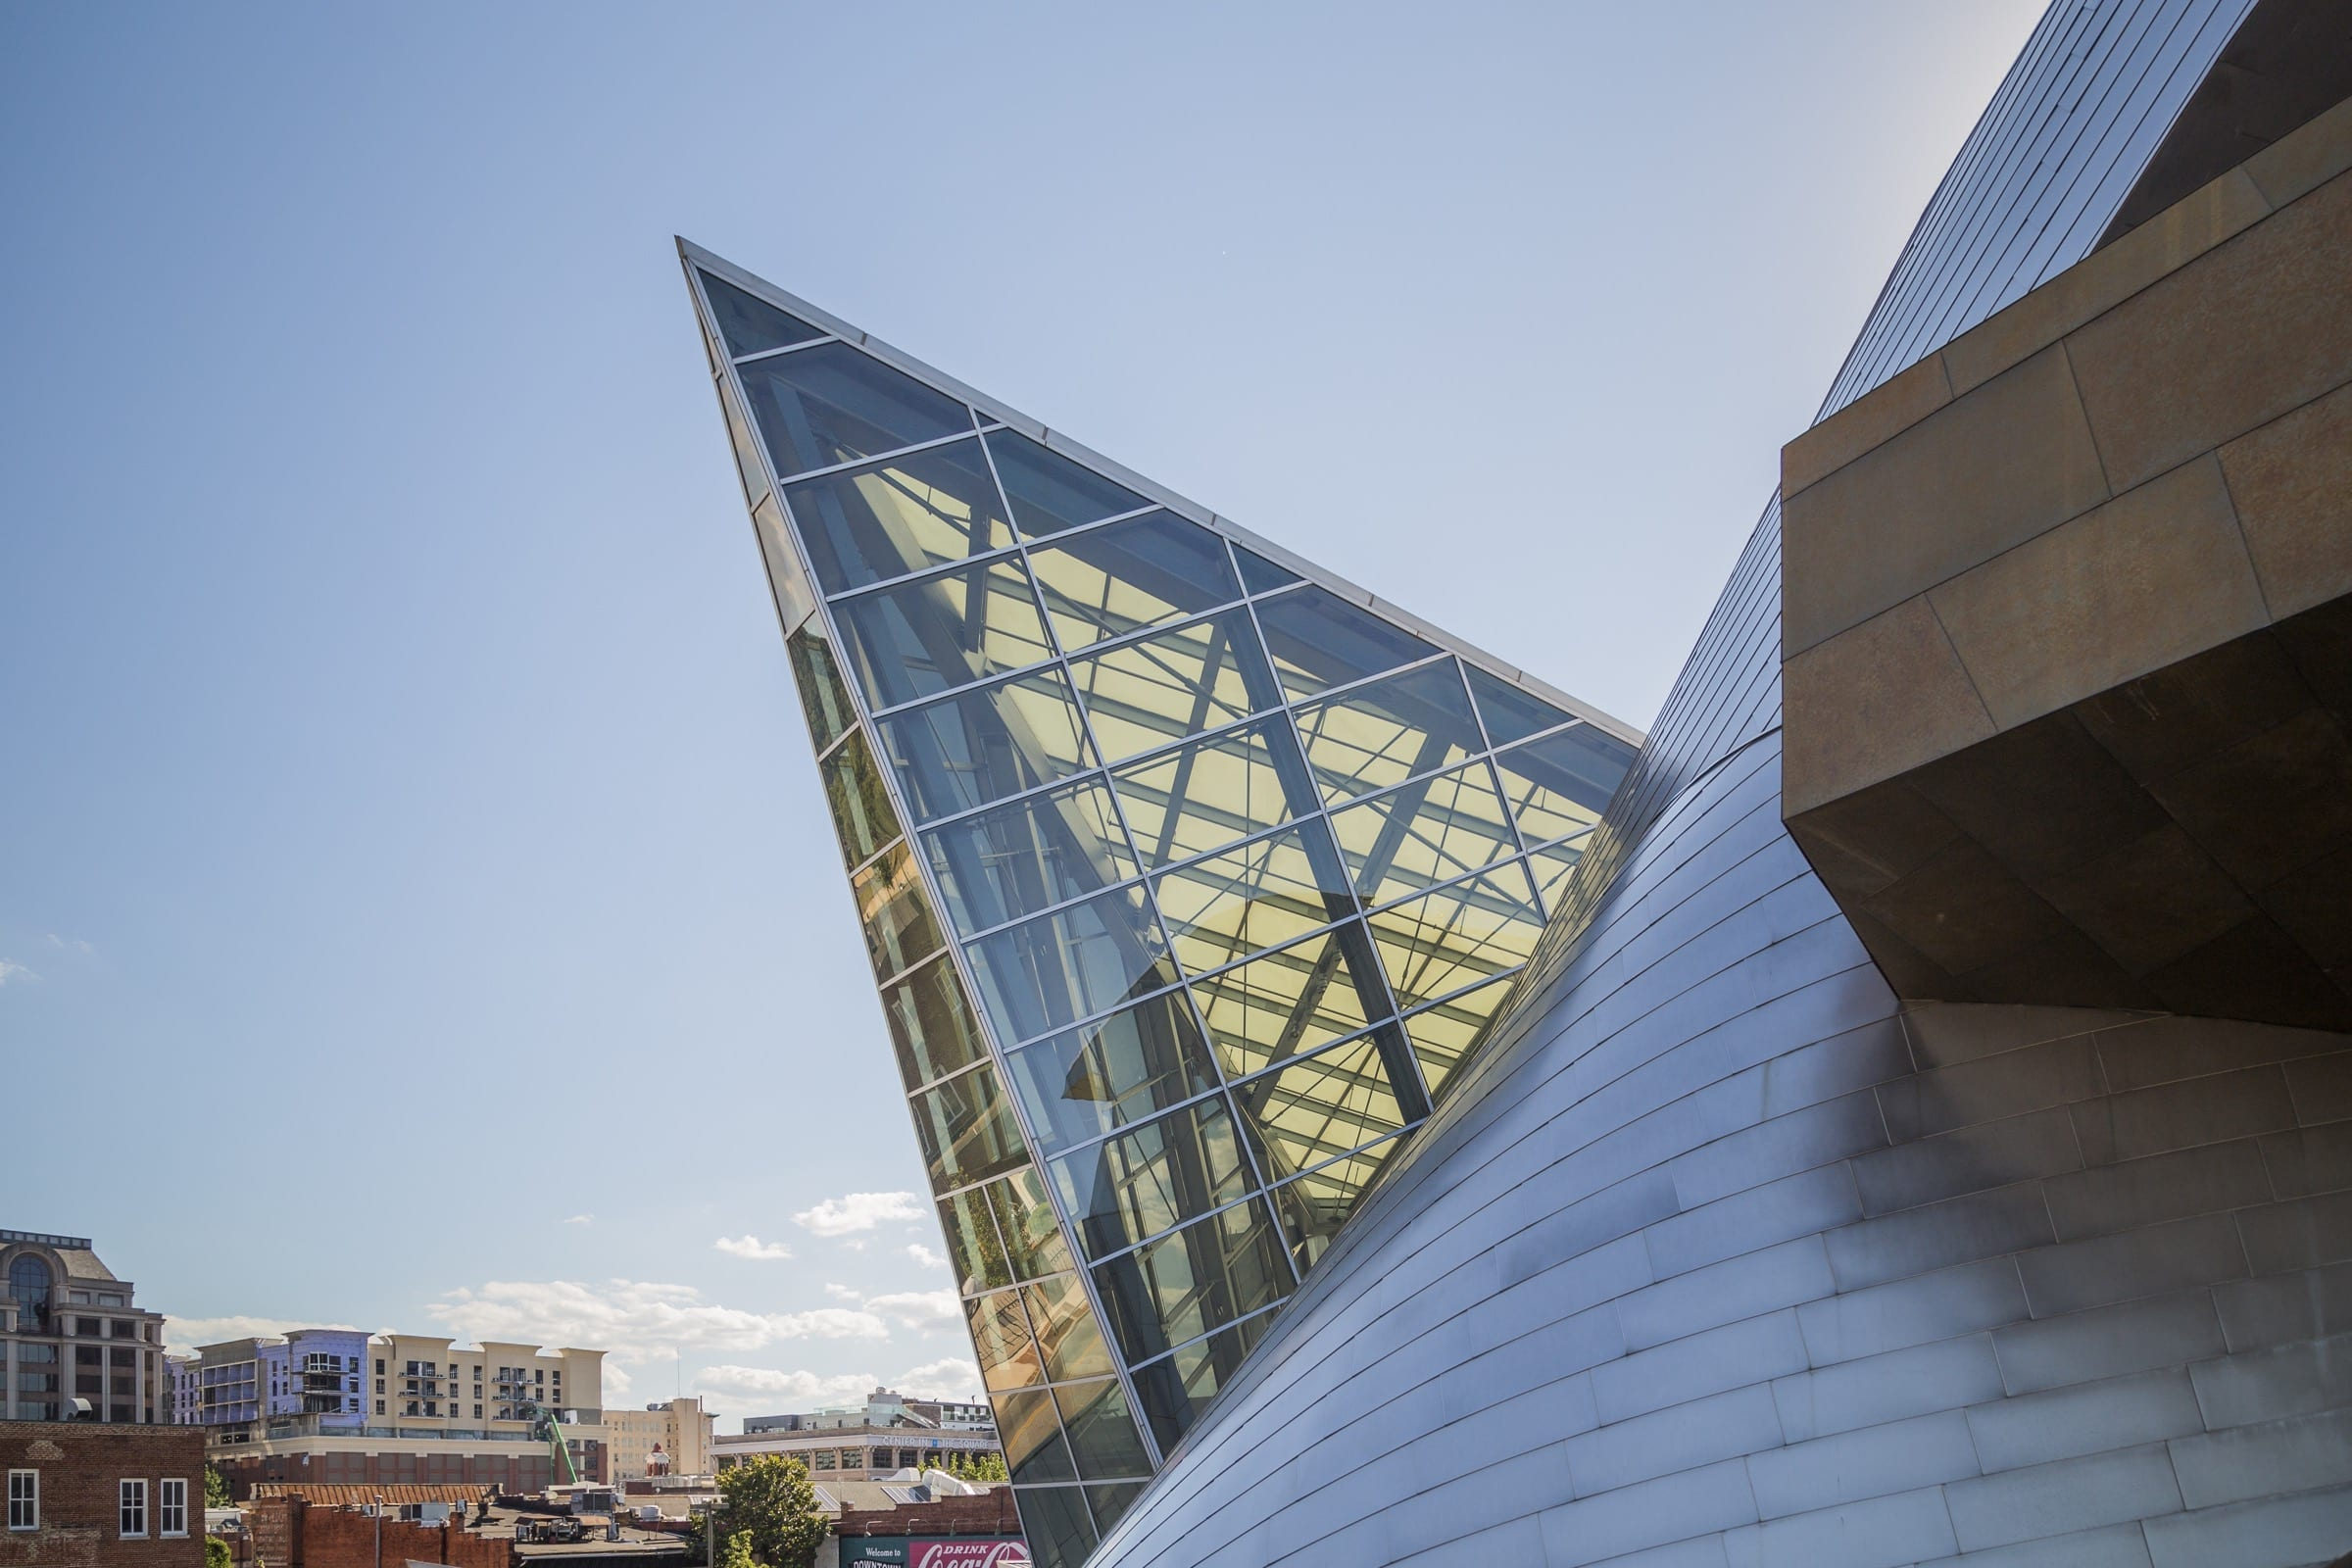 Detail of the Taubman Museum's glass, steel, and zinc facade and building enclosure.